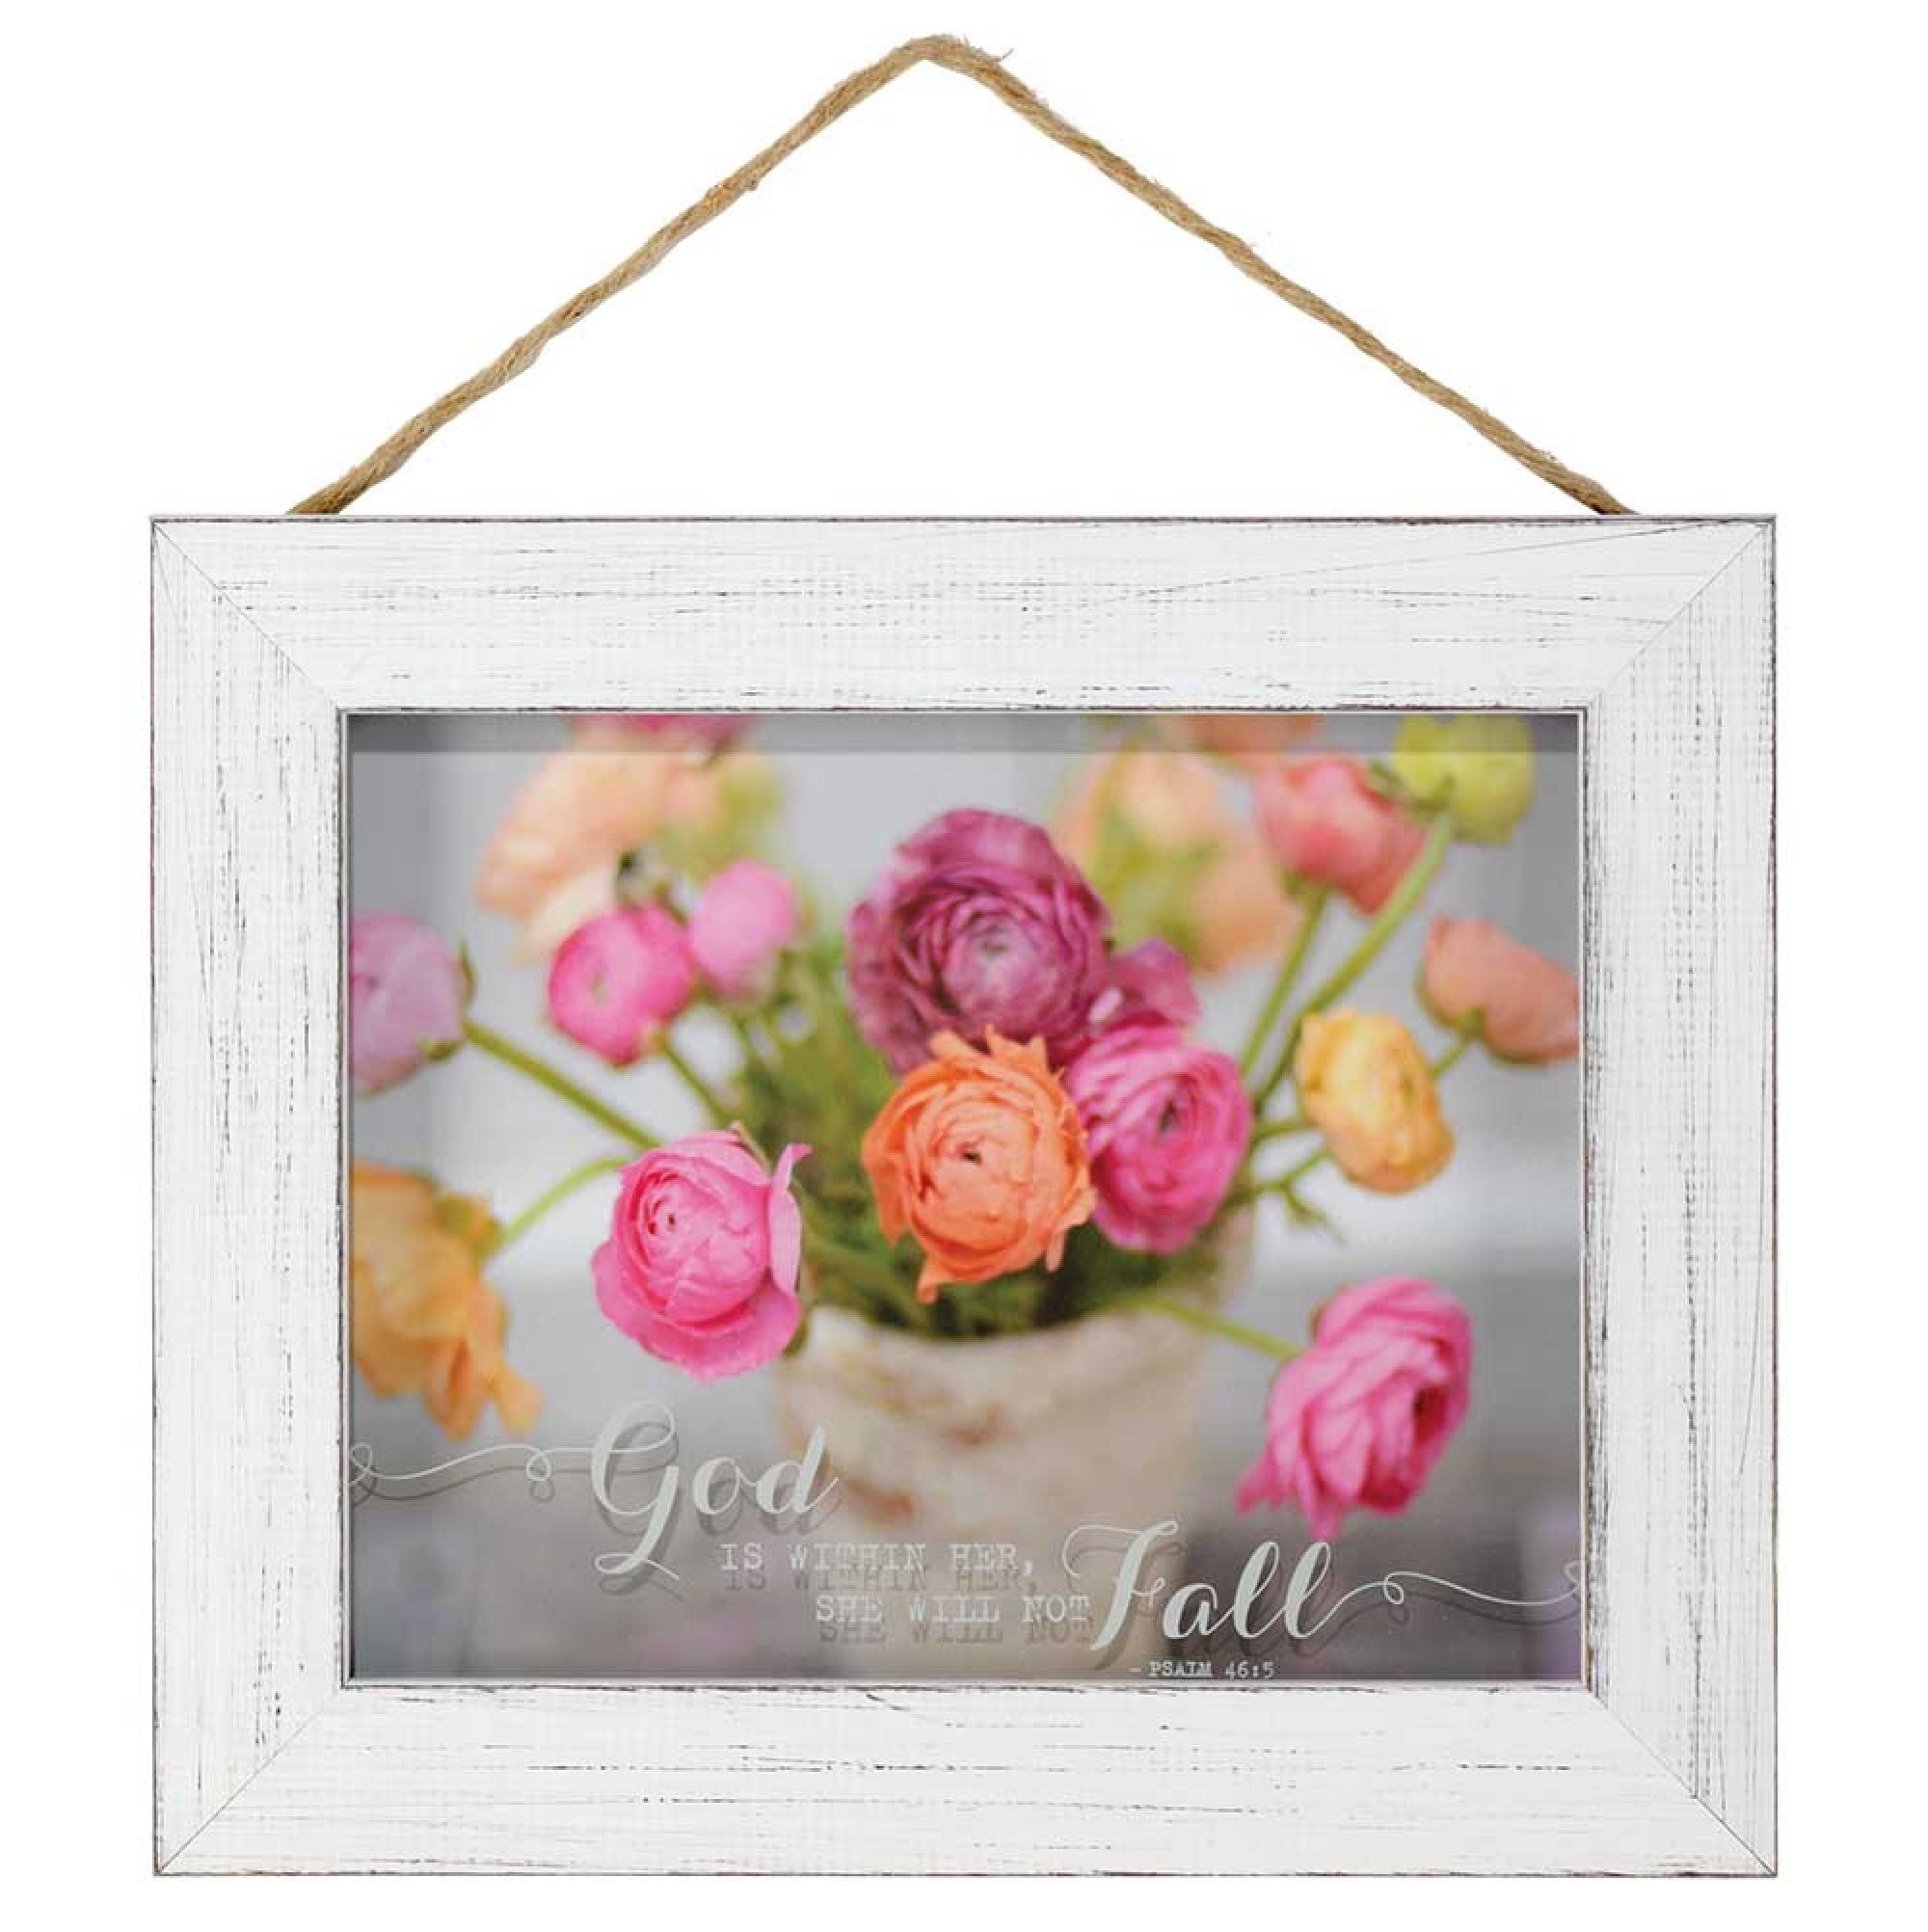 God Is Within Her Coloful Ranunculus Flowers Sign Plaque Wall Art 10 X 12 Wood Frame White In 2020 Ranunculus Flowers Wall Plaques Frame